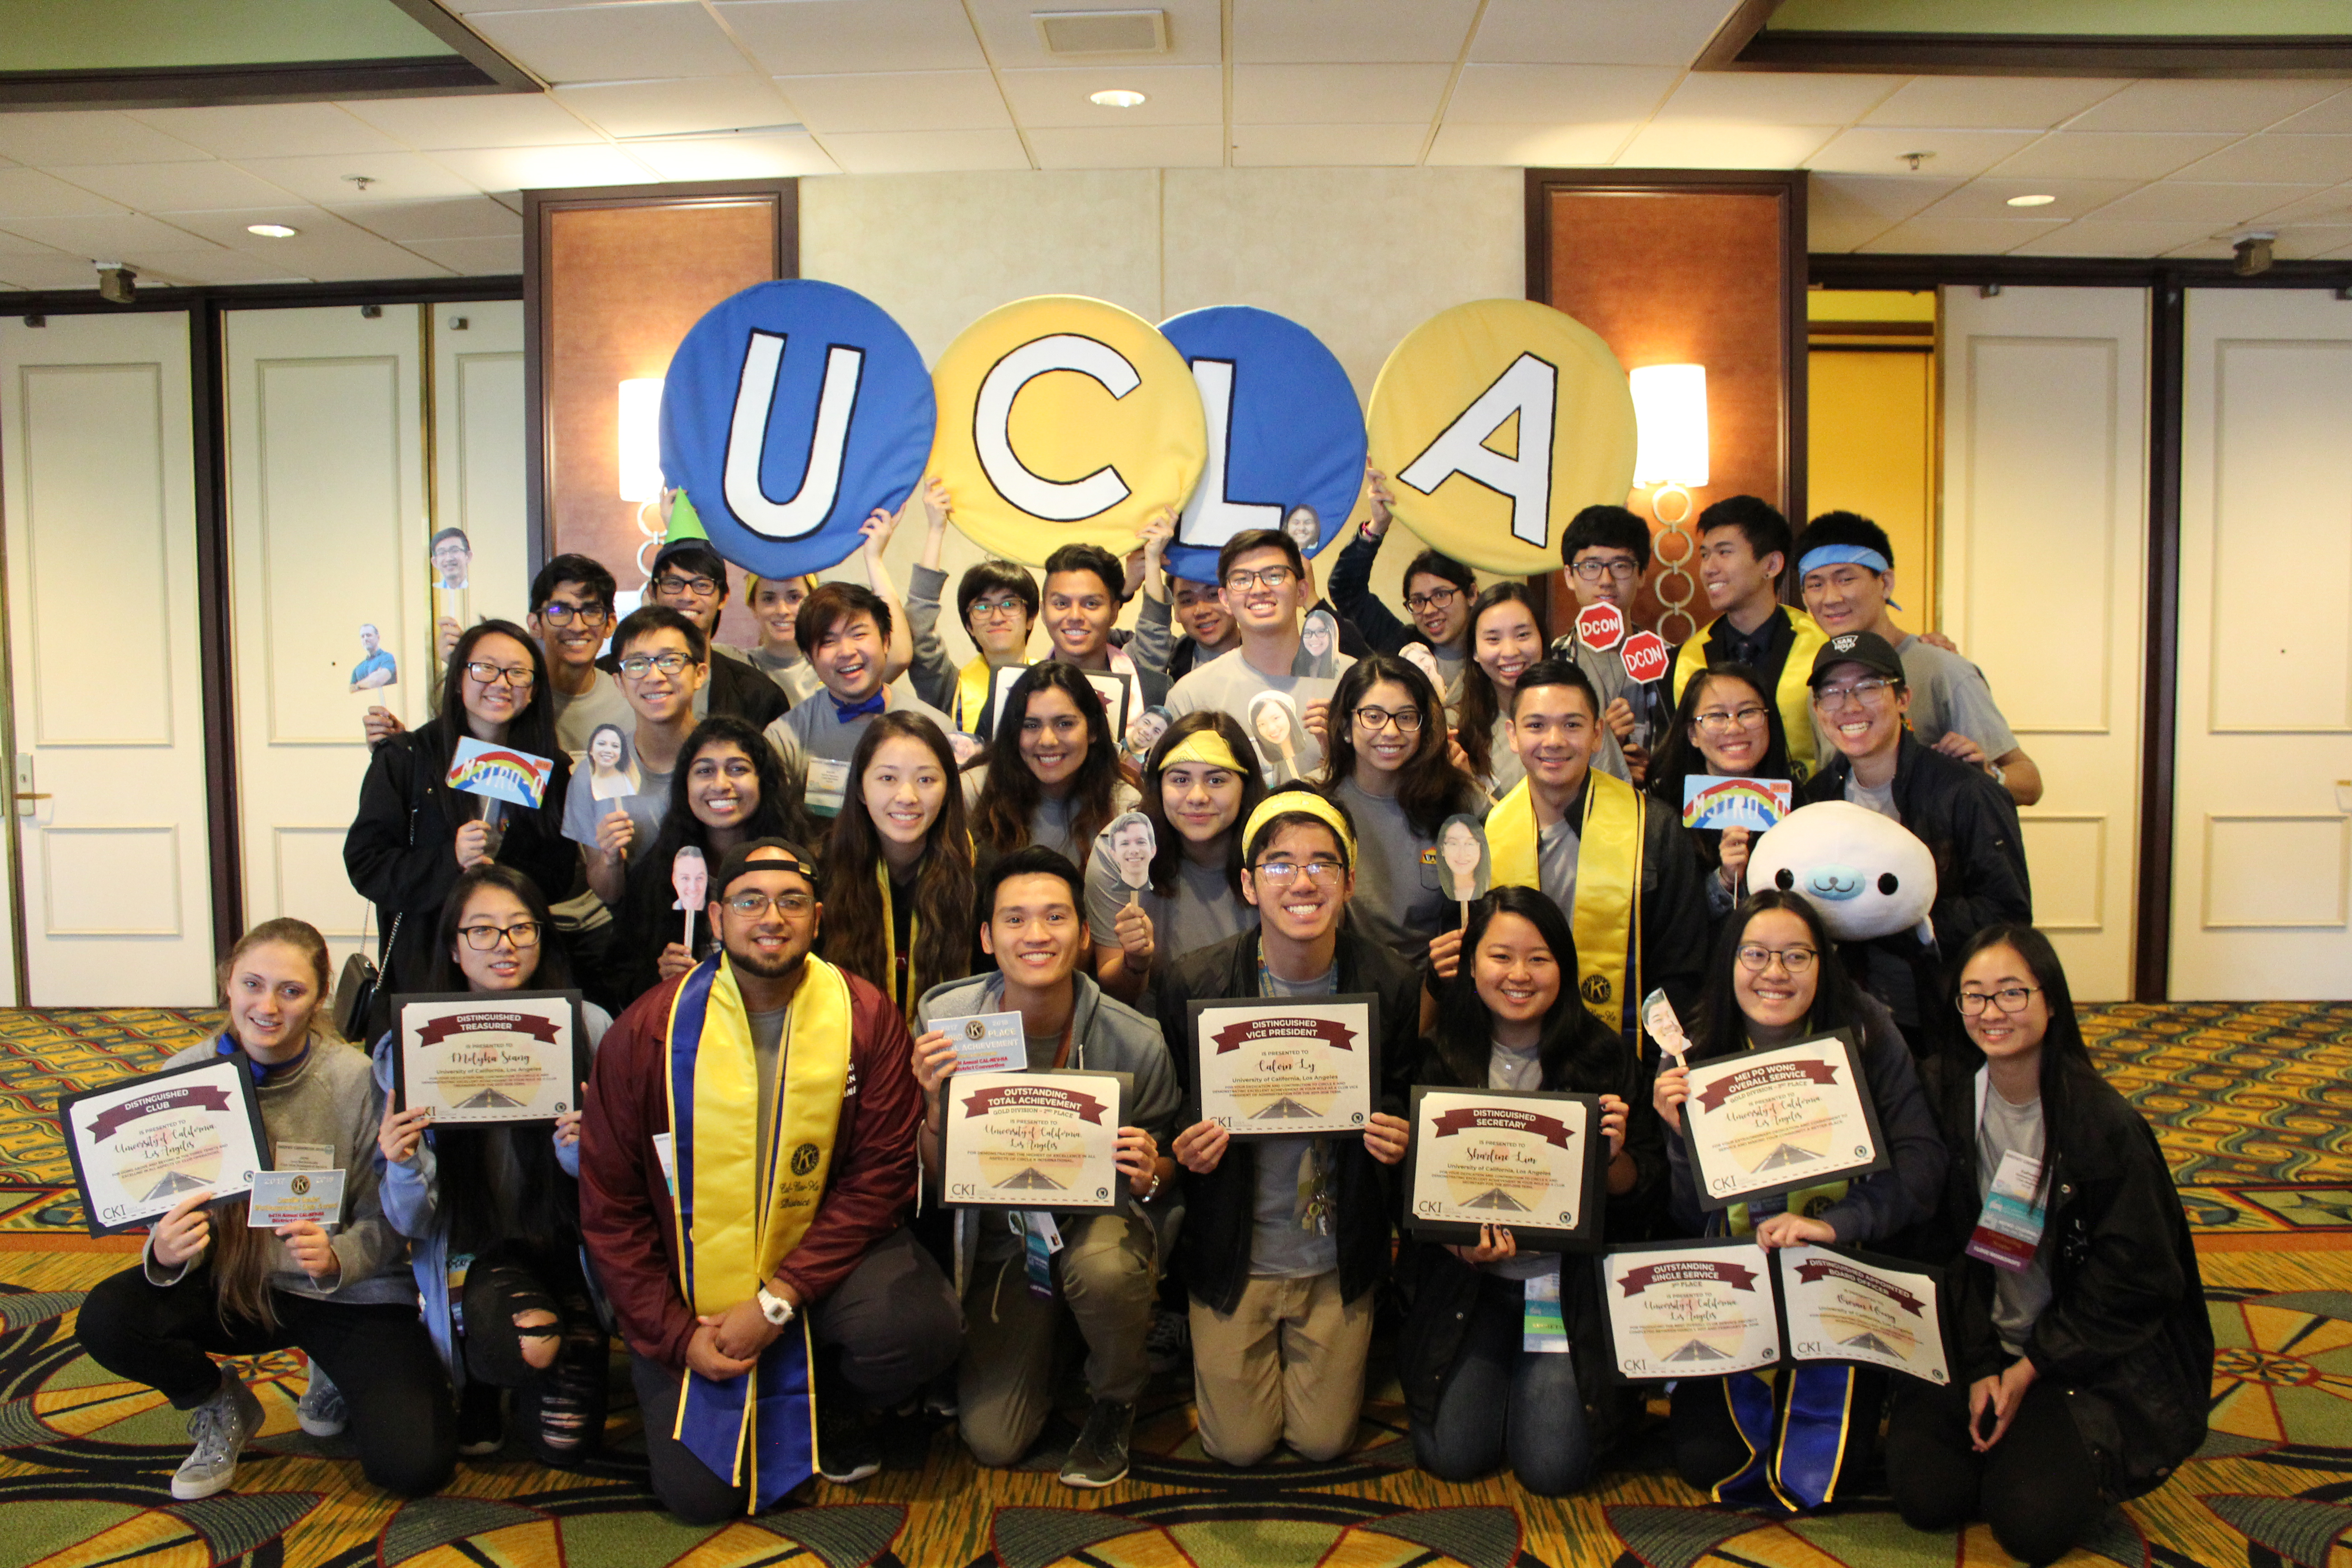 UCLA Receives Multiple Awards at 2018 Kiwanis Youth Convention